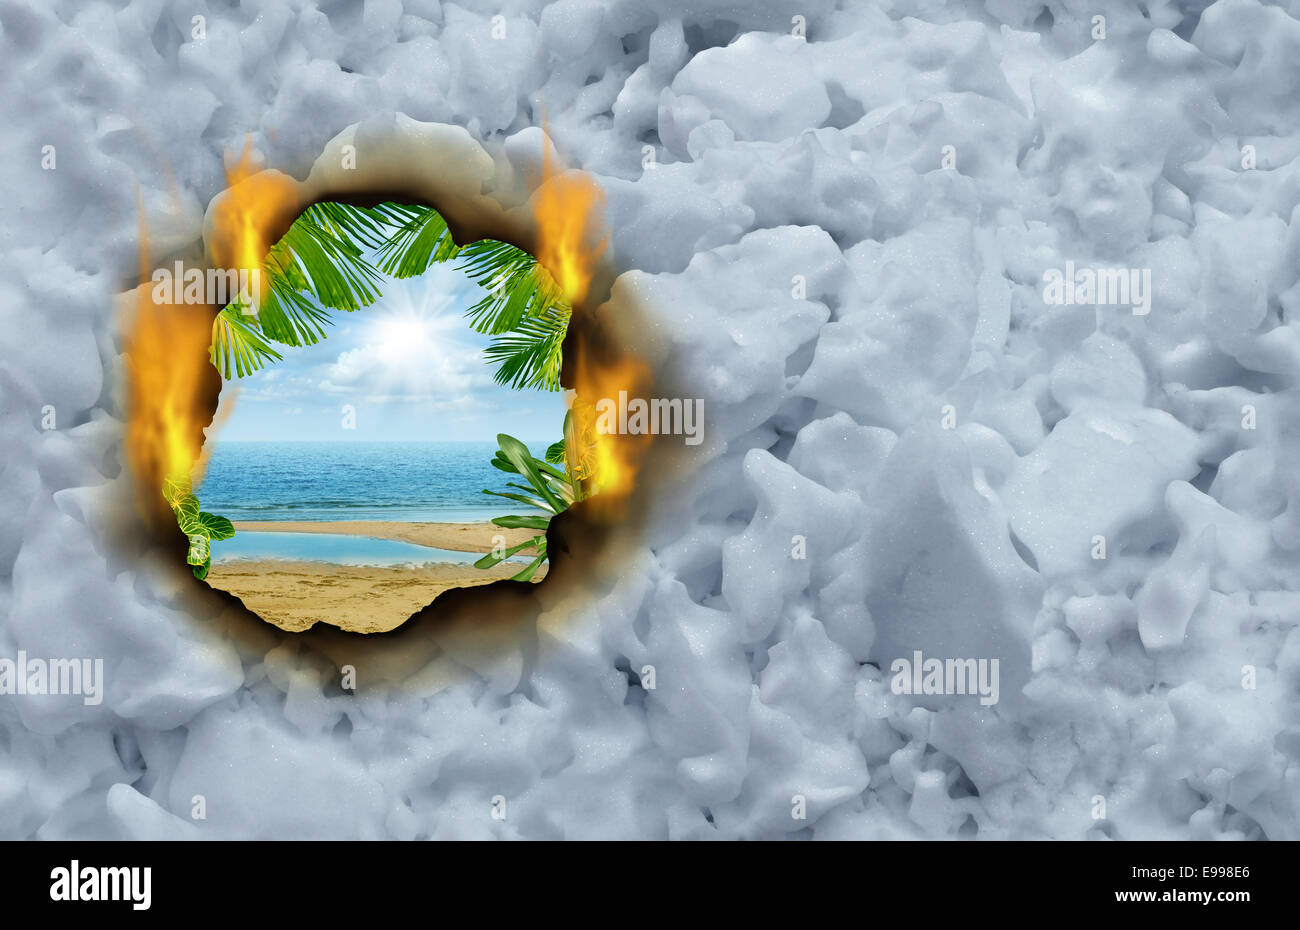 Winter escape concept as a burning hole on a cold winter snow background revealing a hot tropical beach and ocean - Stock Image